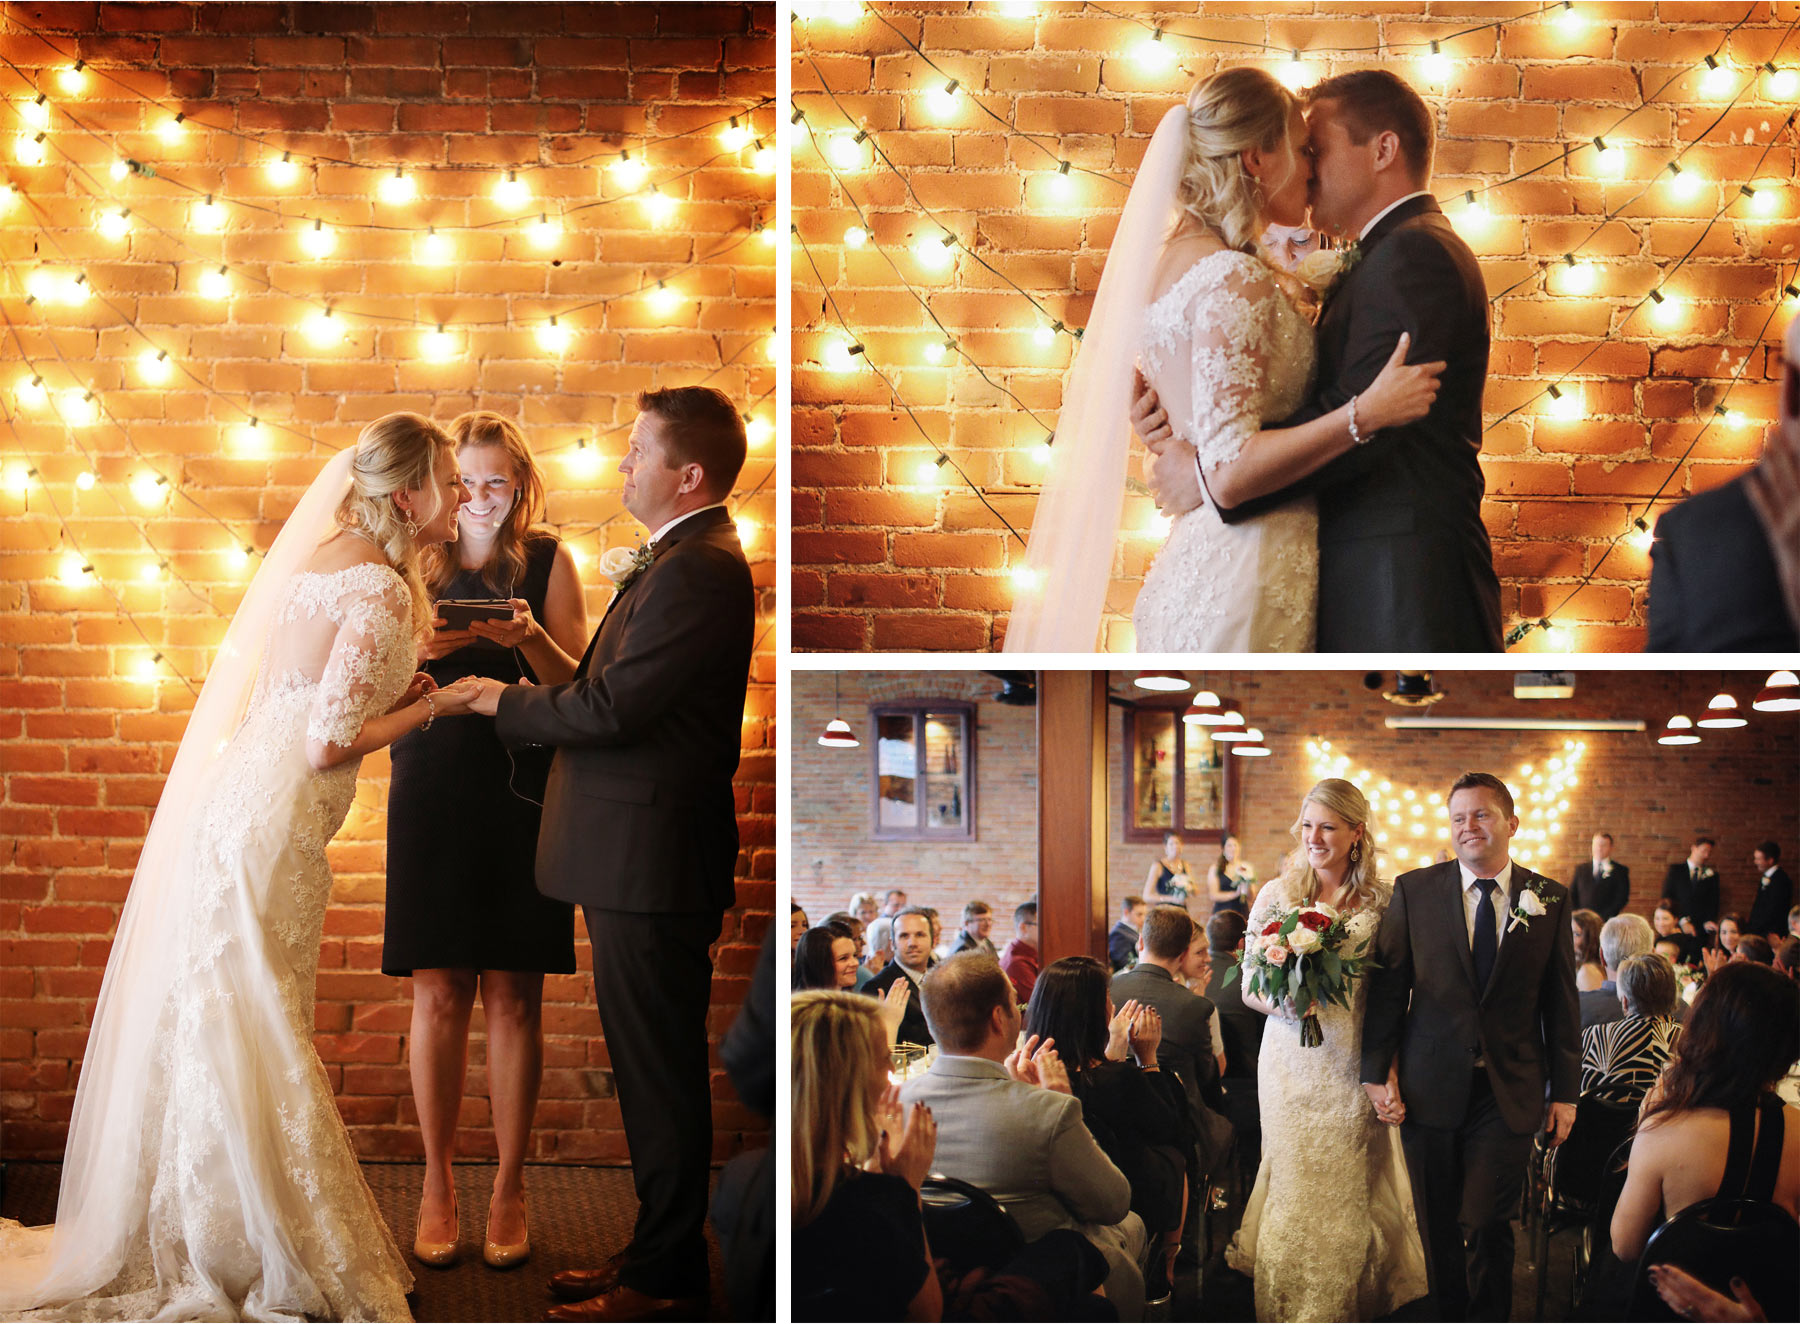 17-Shakopee-Minnesota-Wedding-Photography-by-Vick-Photography-Turtles-1890-Social-Centre-Ceremony-Amber-and-Justin.jpg